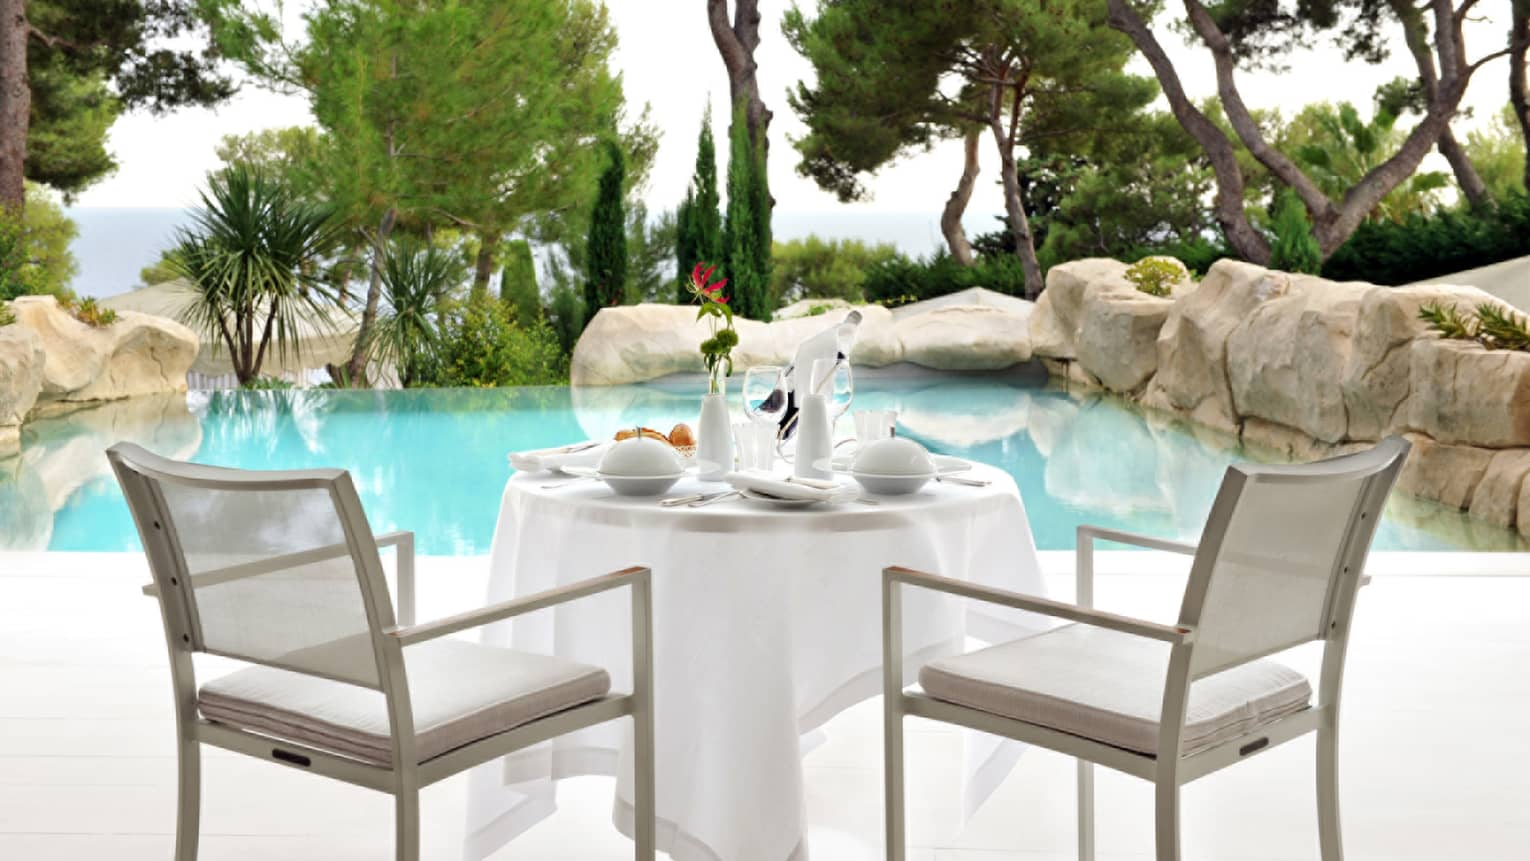 Private dining table room service on hotel suite patio by swimming pool